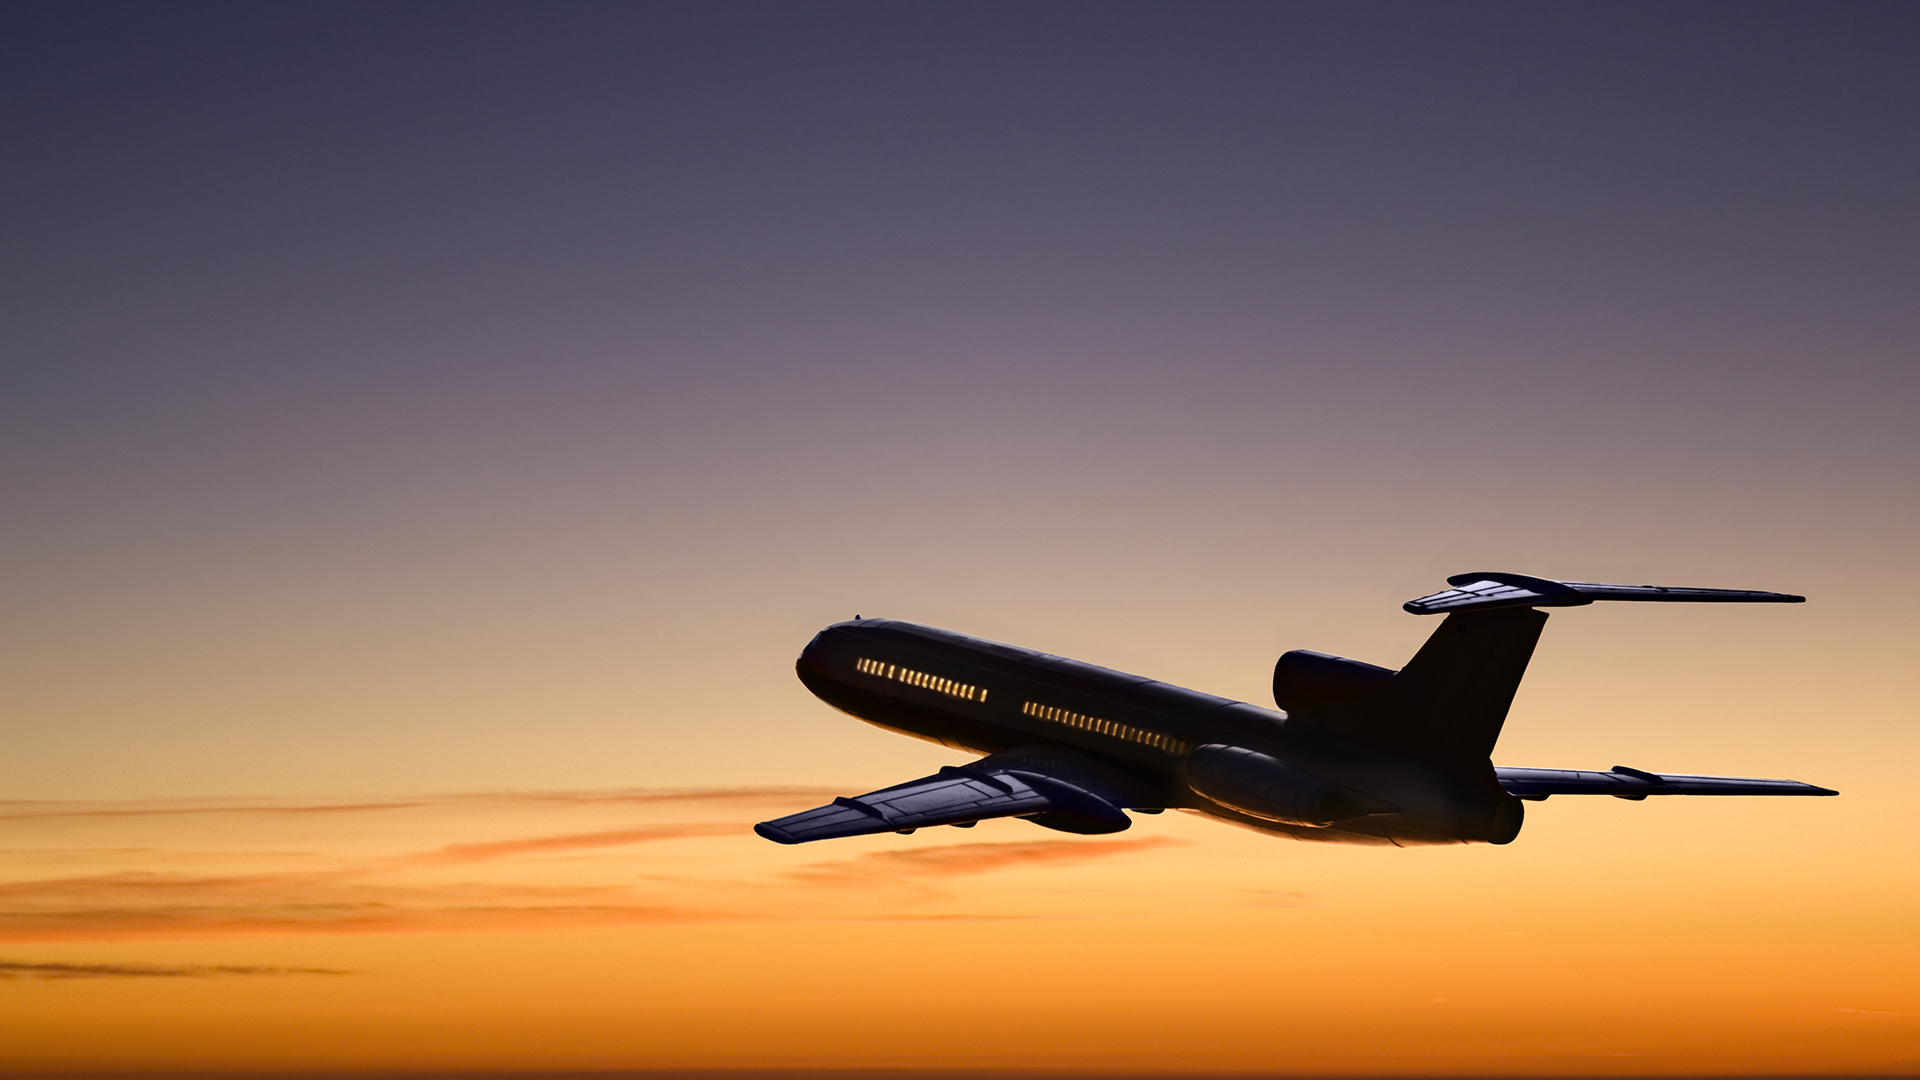 Lighting Commercial Aviation Collins Aerospace